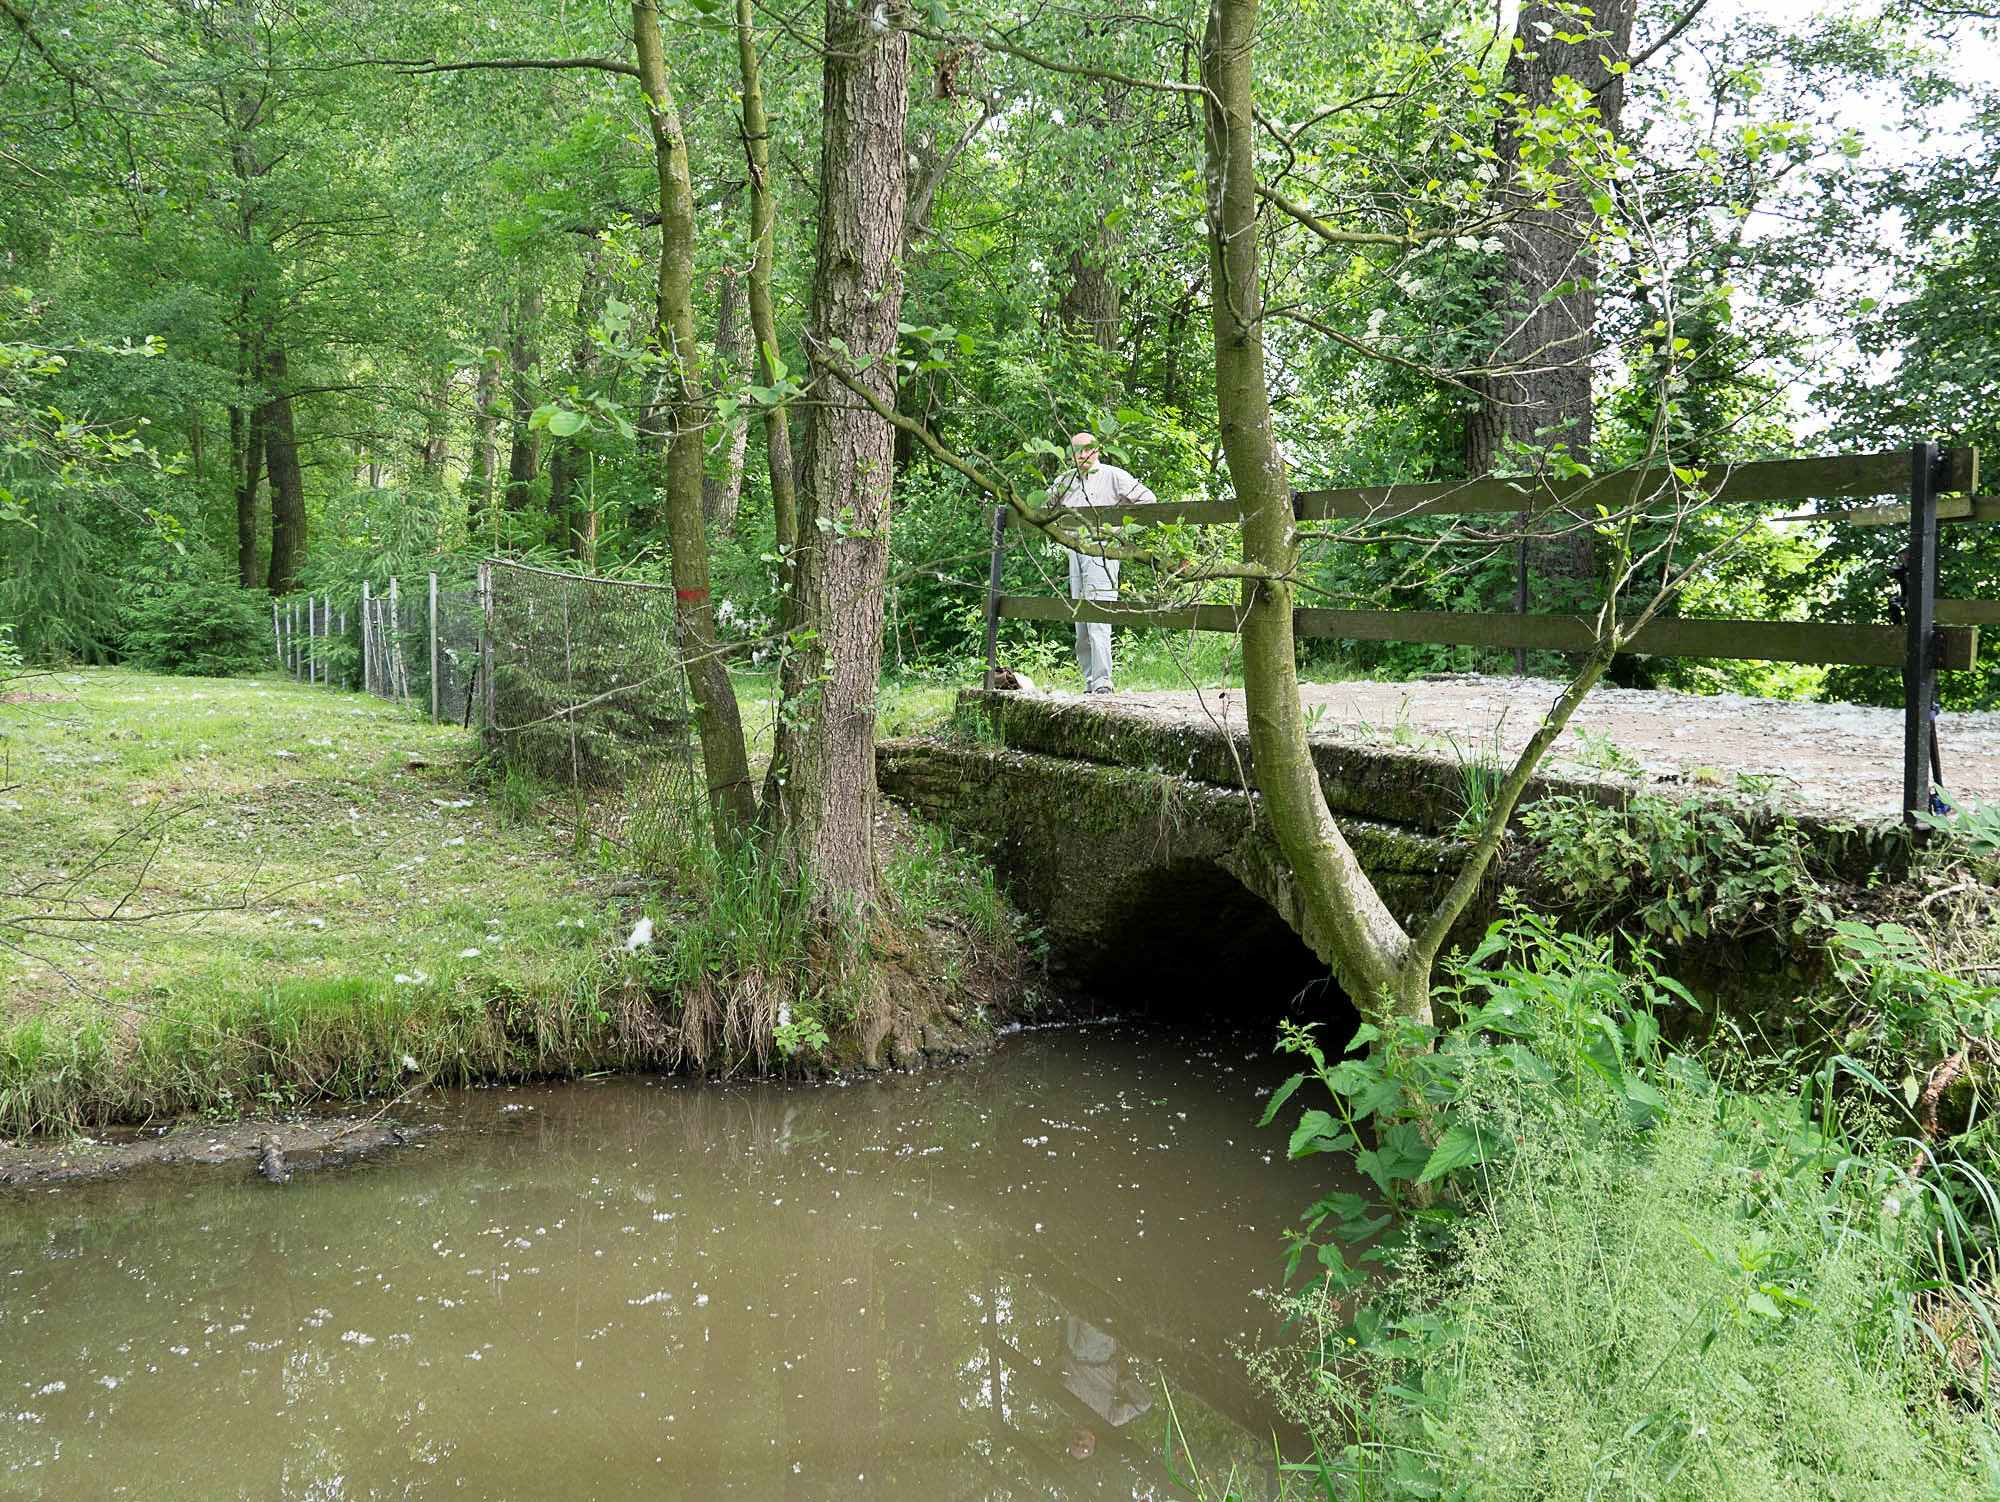 A bridge over the Bistritz river at Dohalice.  Old stones are visible under the modern concrete decking.